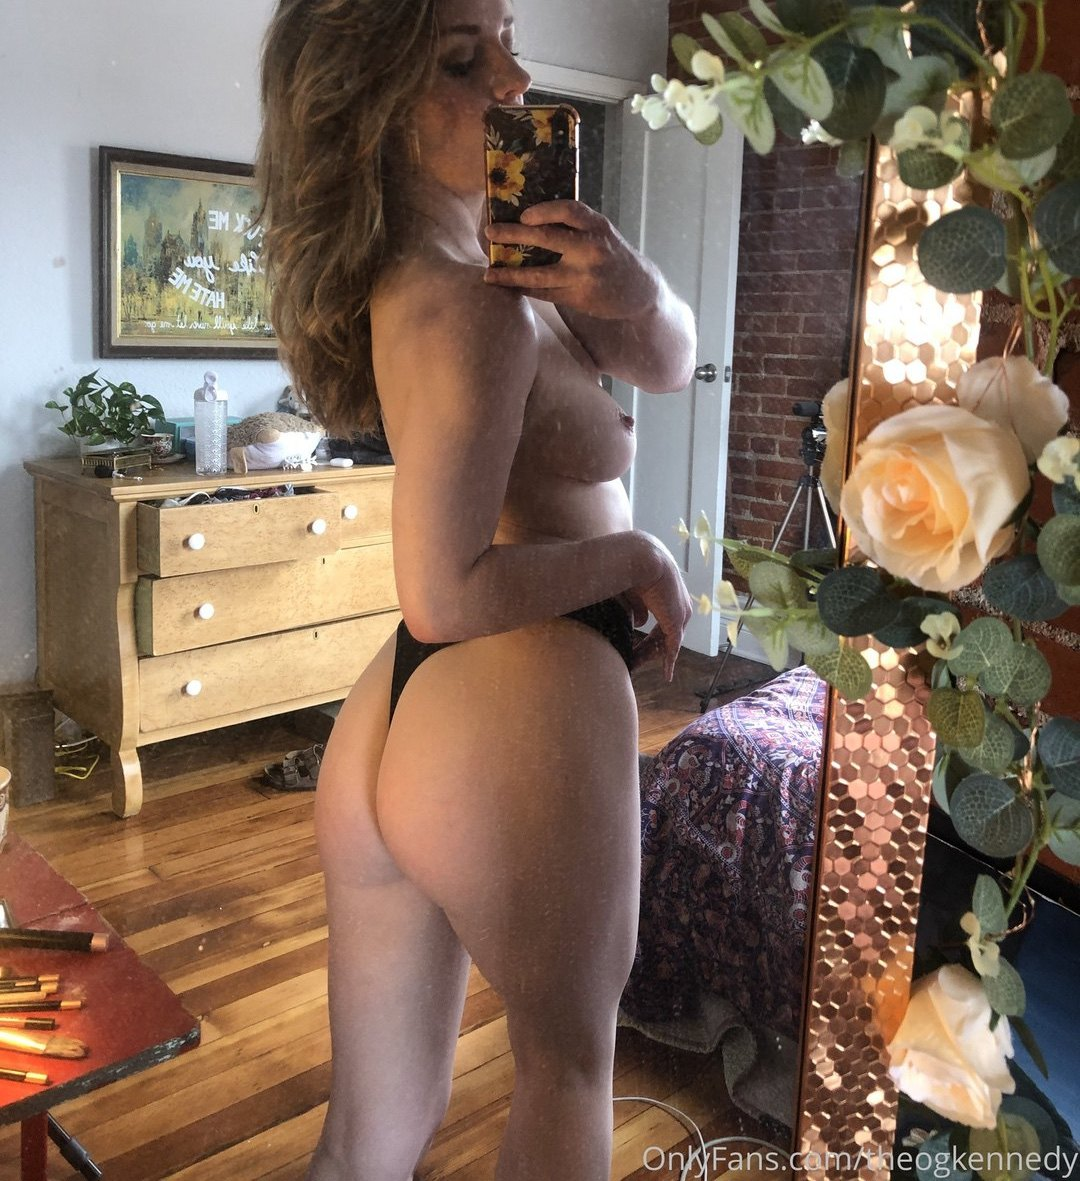 Kate Kennedy Theogkennedy Onlyfans Nudes Leaks 0026